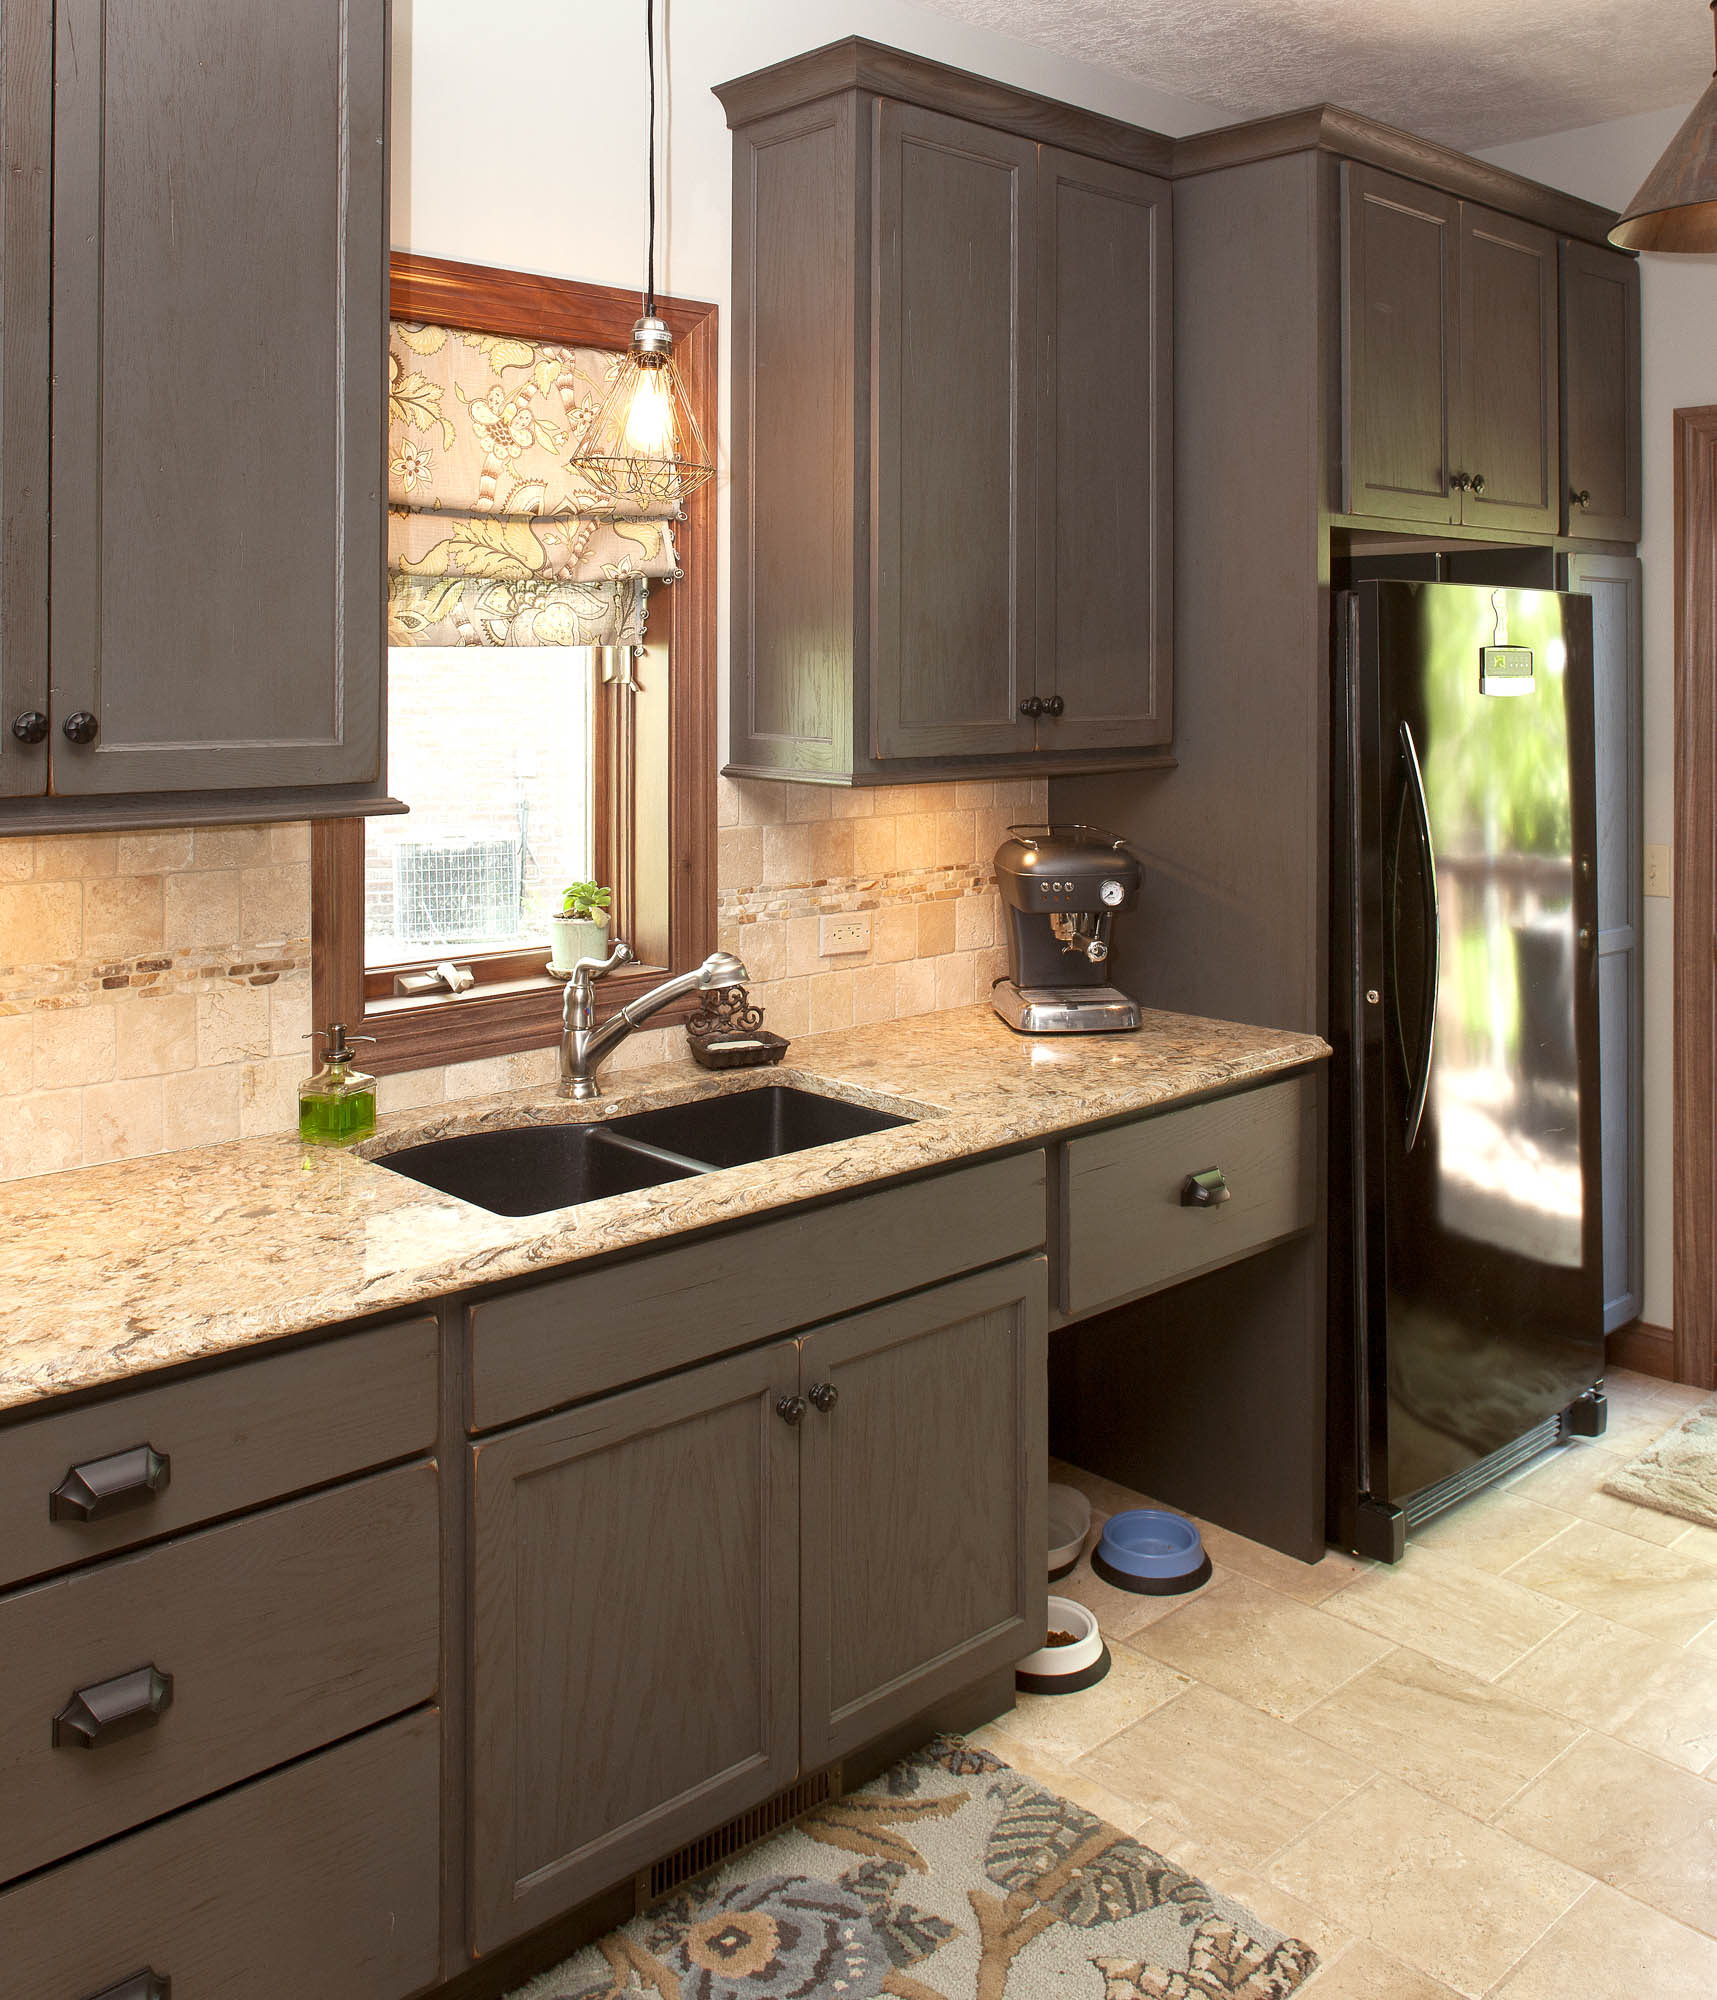 Showplace Kitchen Cabinets View The Accents In This Kitchen Remodel Showplace Cabinetry